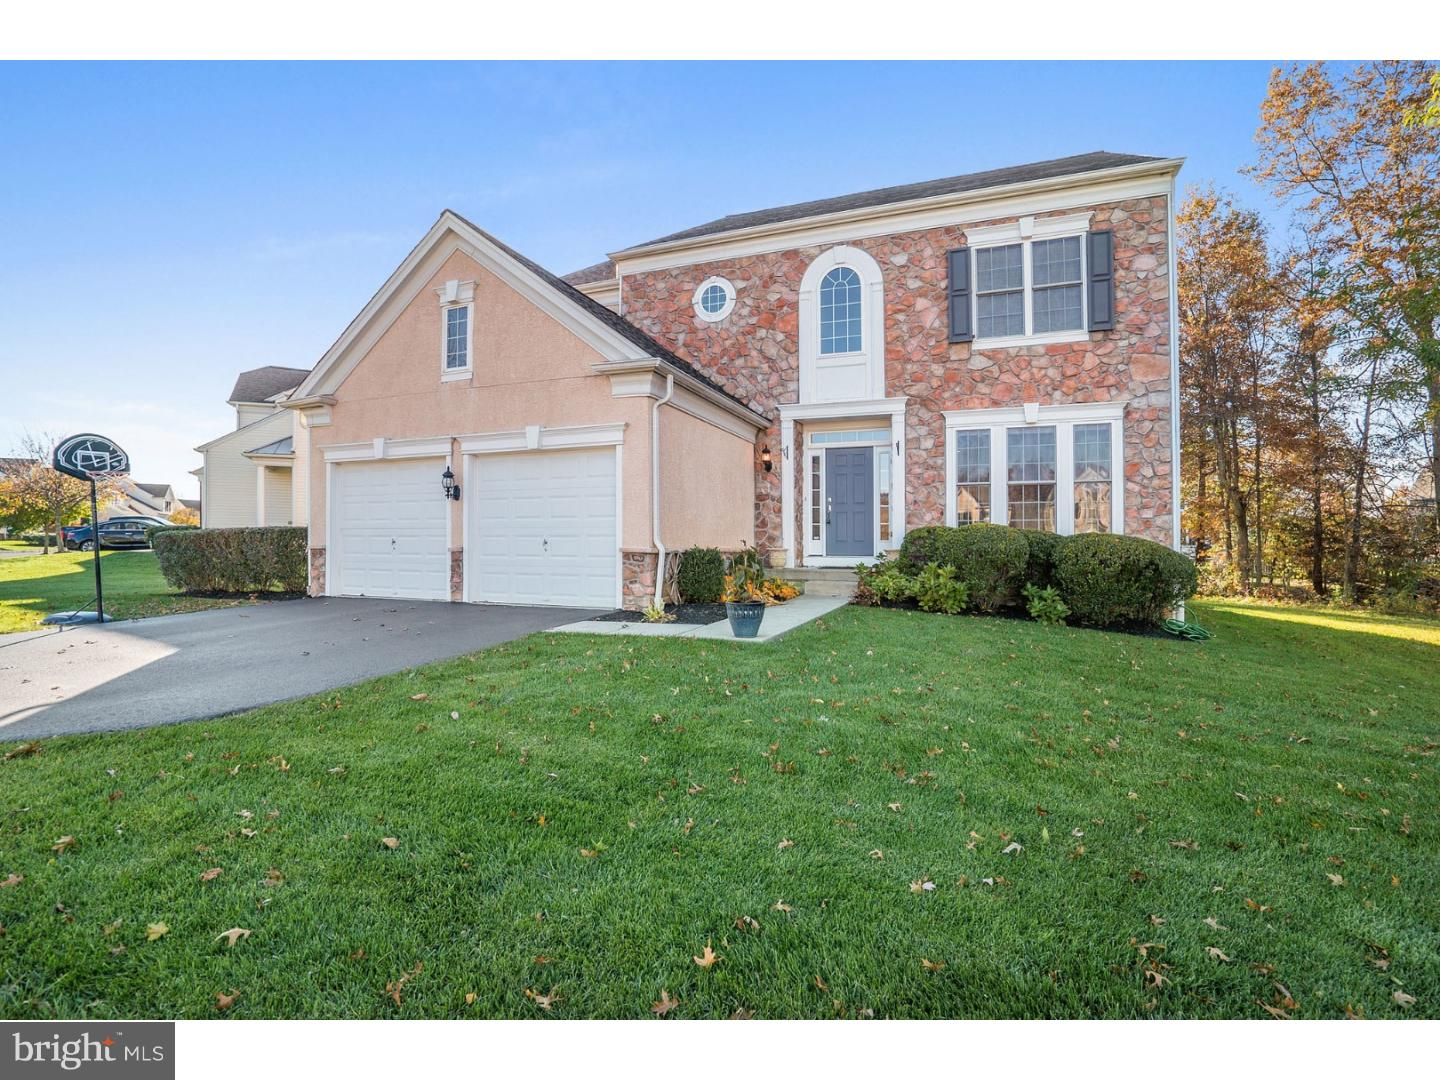 230 LIBERTY TRAIL COURT, FOUNTAINVILLE, PA 18923